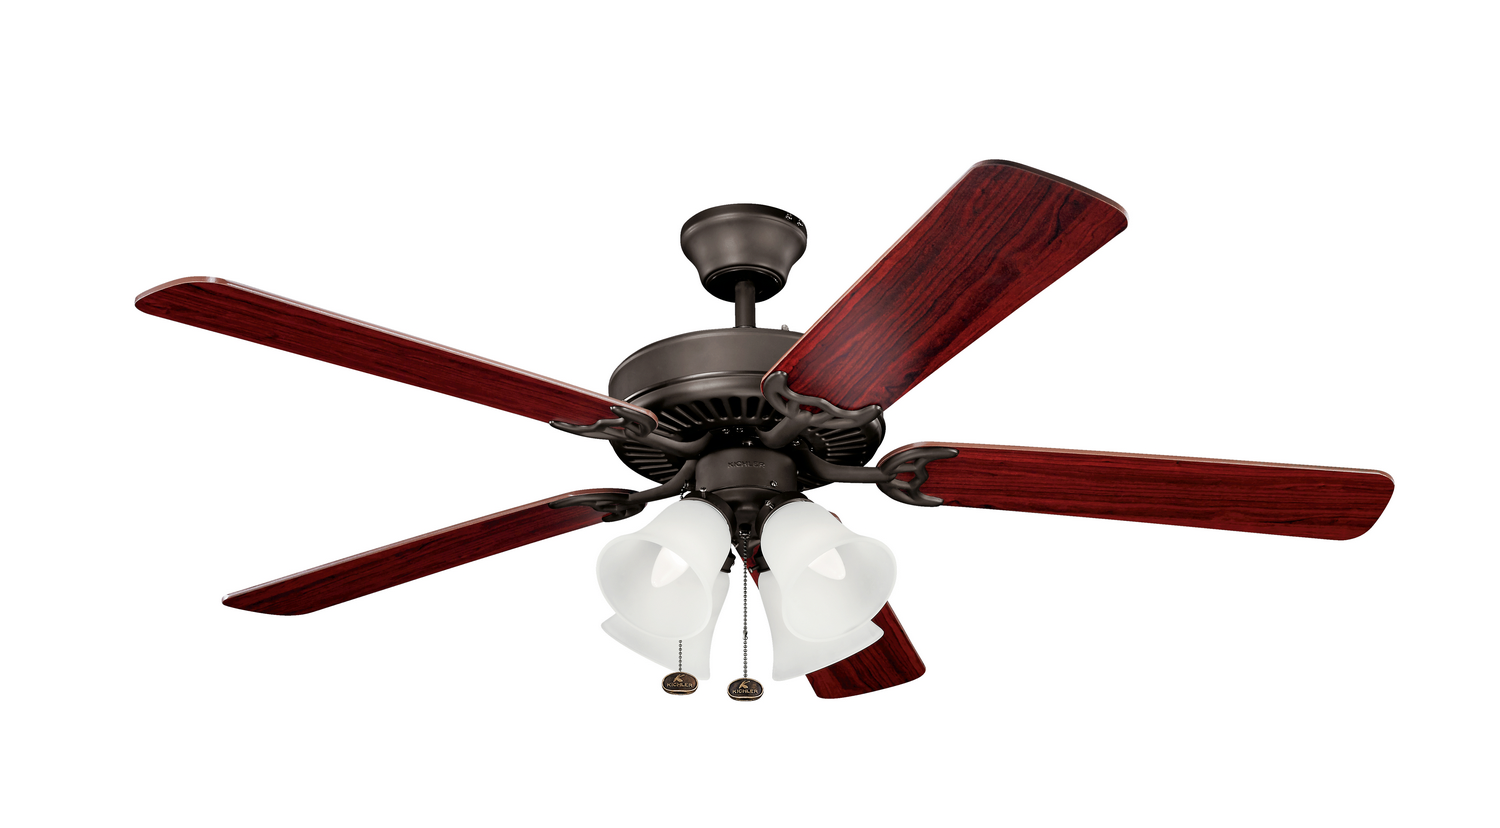 52 inchCeiling Fan from the Basics collection by Kichler 402SNB